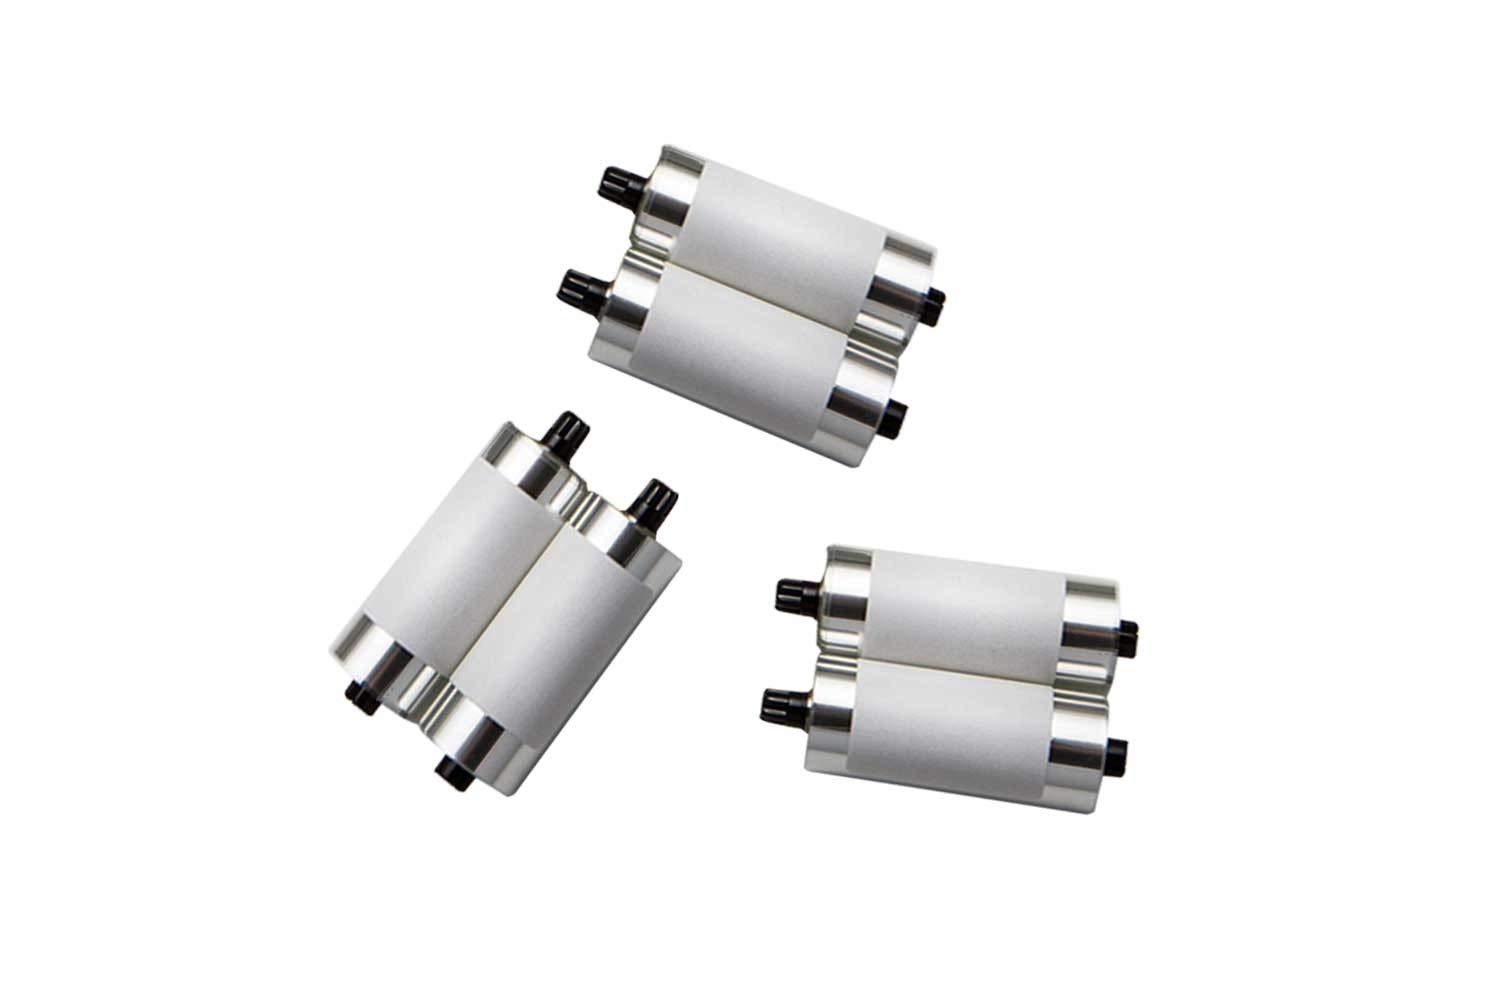 ETHEN RRO0502 Spare Rollers Pack 6 Pieces, 50 mm